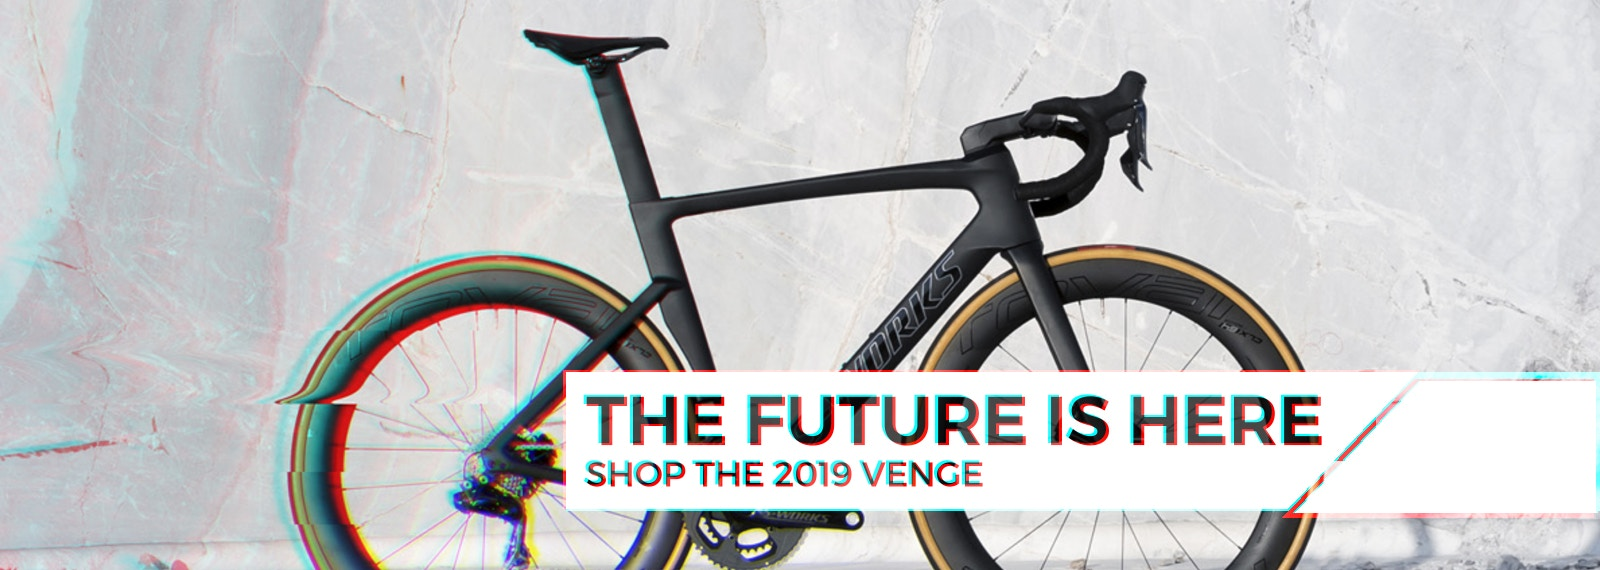 The Future Is Here - Shop the S-Works Venge 2019